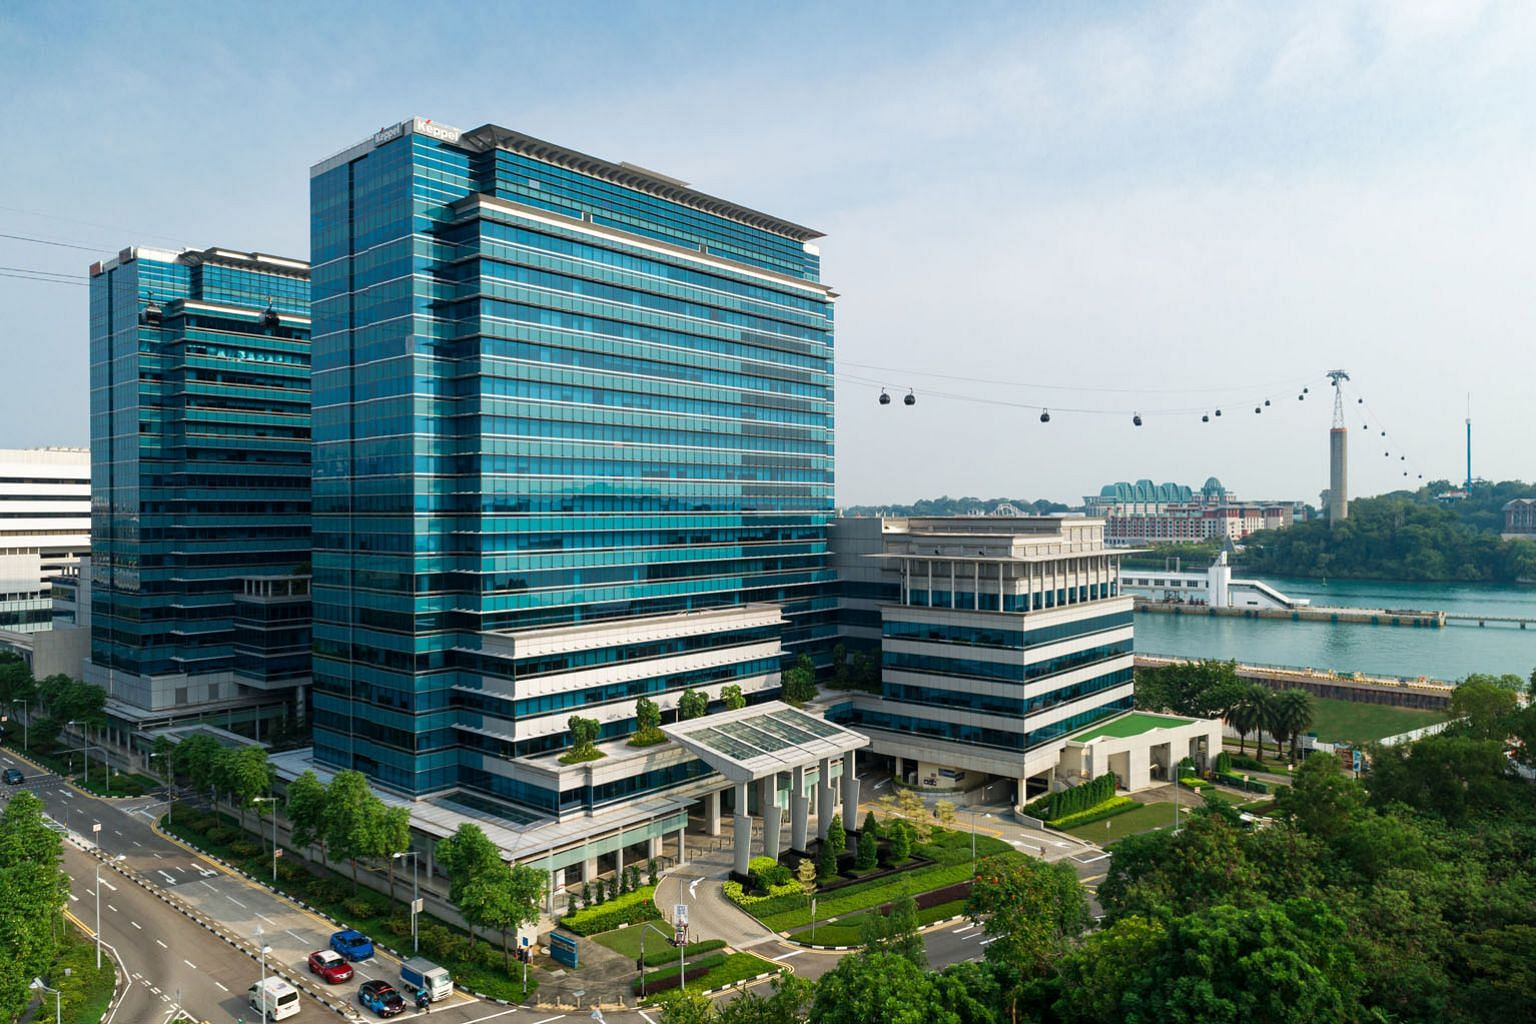 In January, Keppel Bay Tower became the first commercial development in Singapore to use renewable energy to power all its operations, including tenants' offices. Last year, Keppel Corp's green measures are estimated to have saved the equivalent of 4